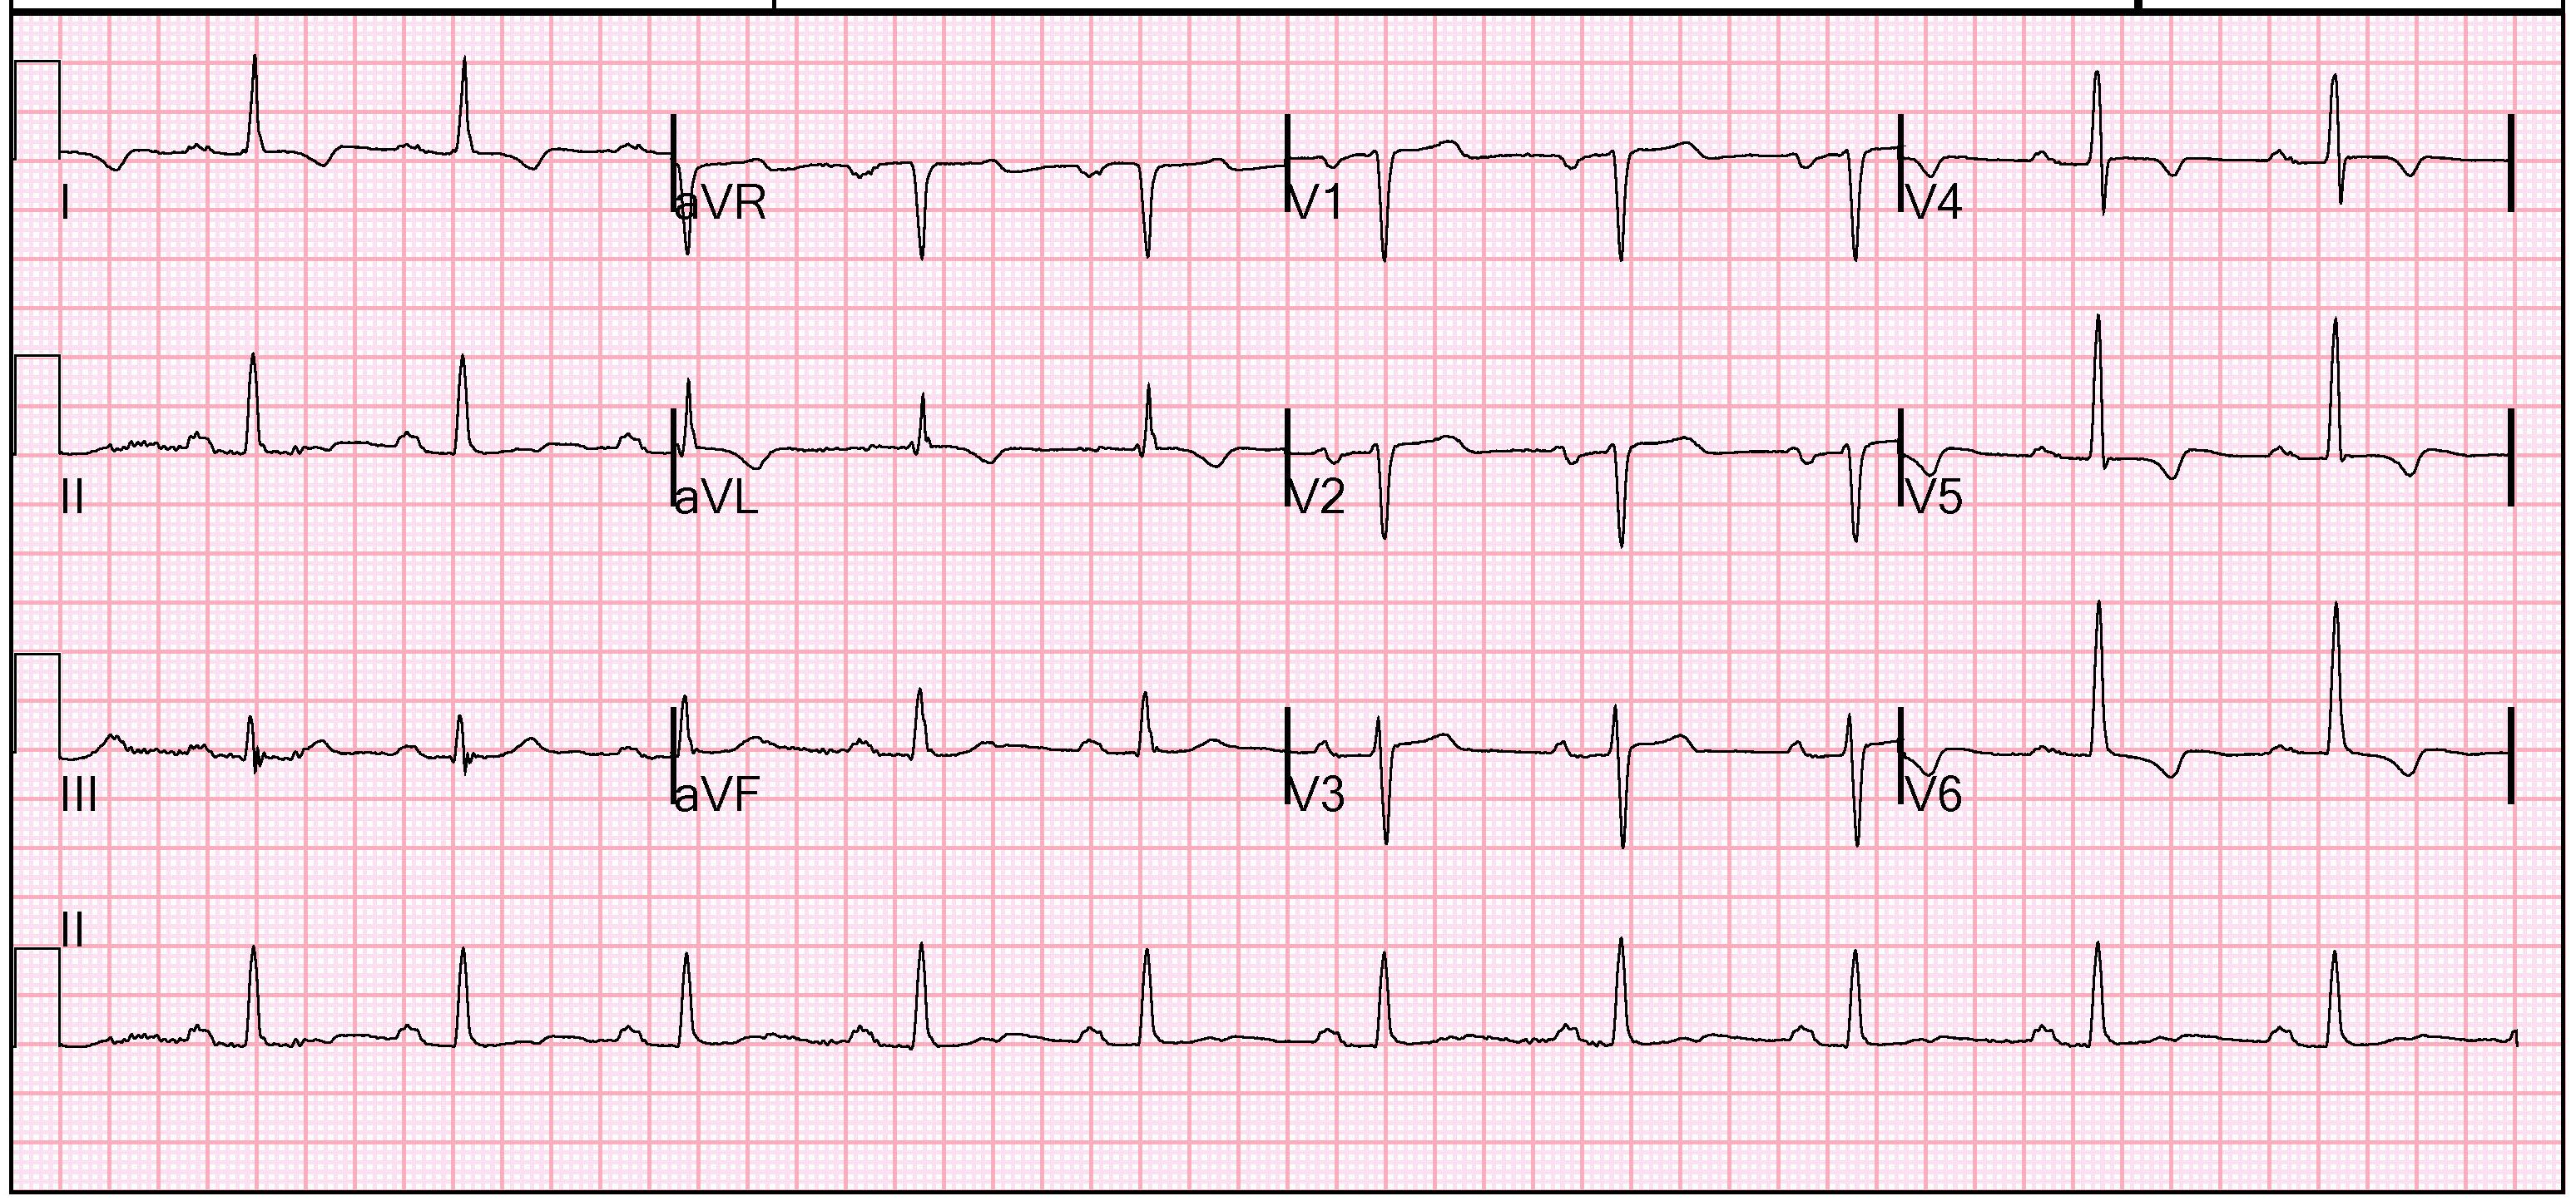 hight resolution of image result for images of normal 12 lead ecg rhythm on ecg strip